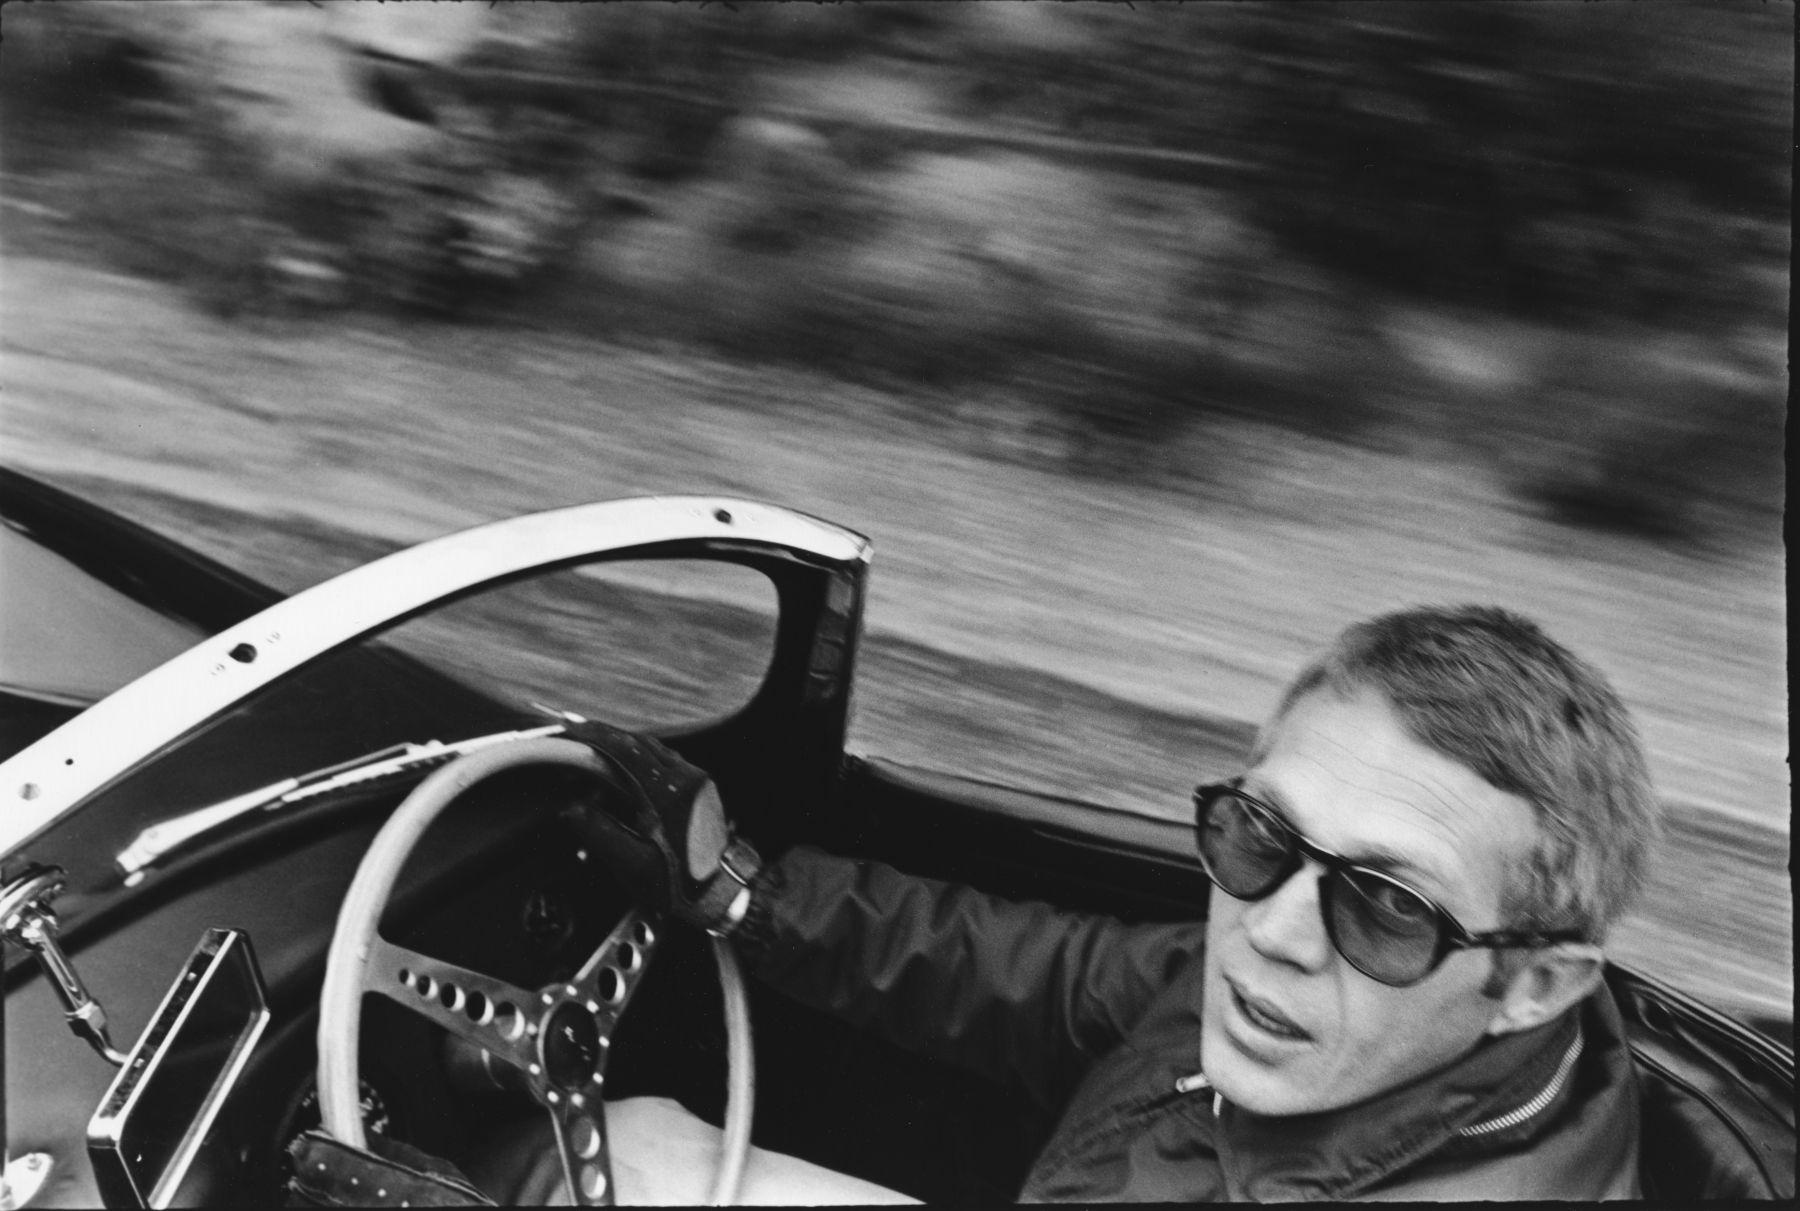 William Claxton Steve McQueen in His XK-SS Jaguar, Mulholland Drive, Los Angeles, 1962